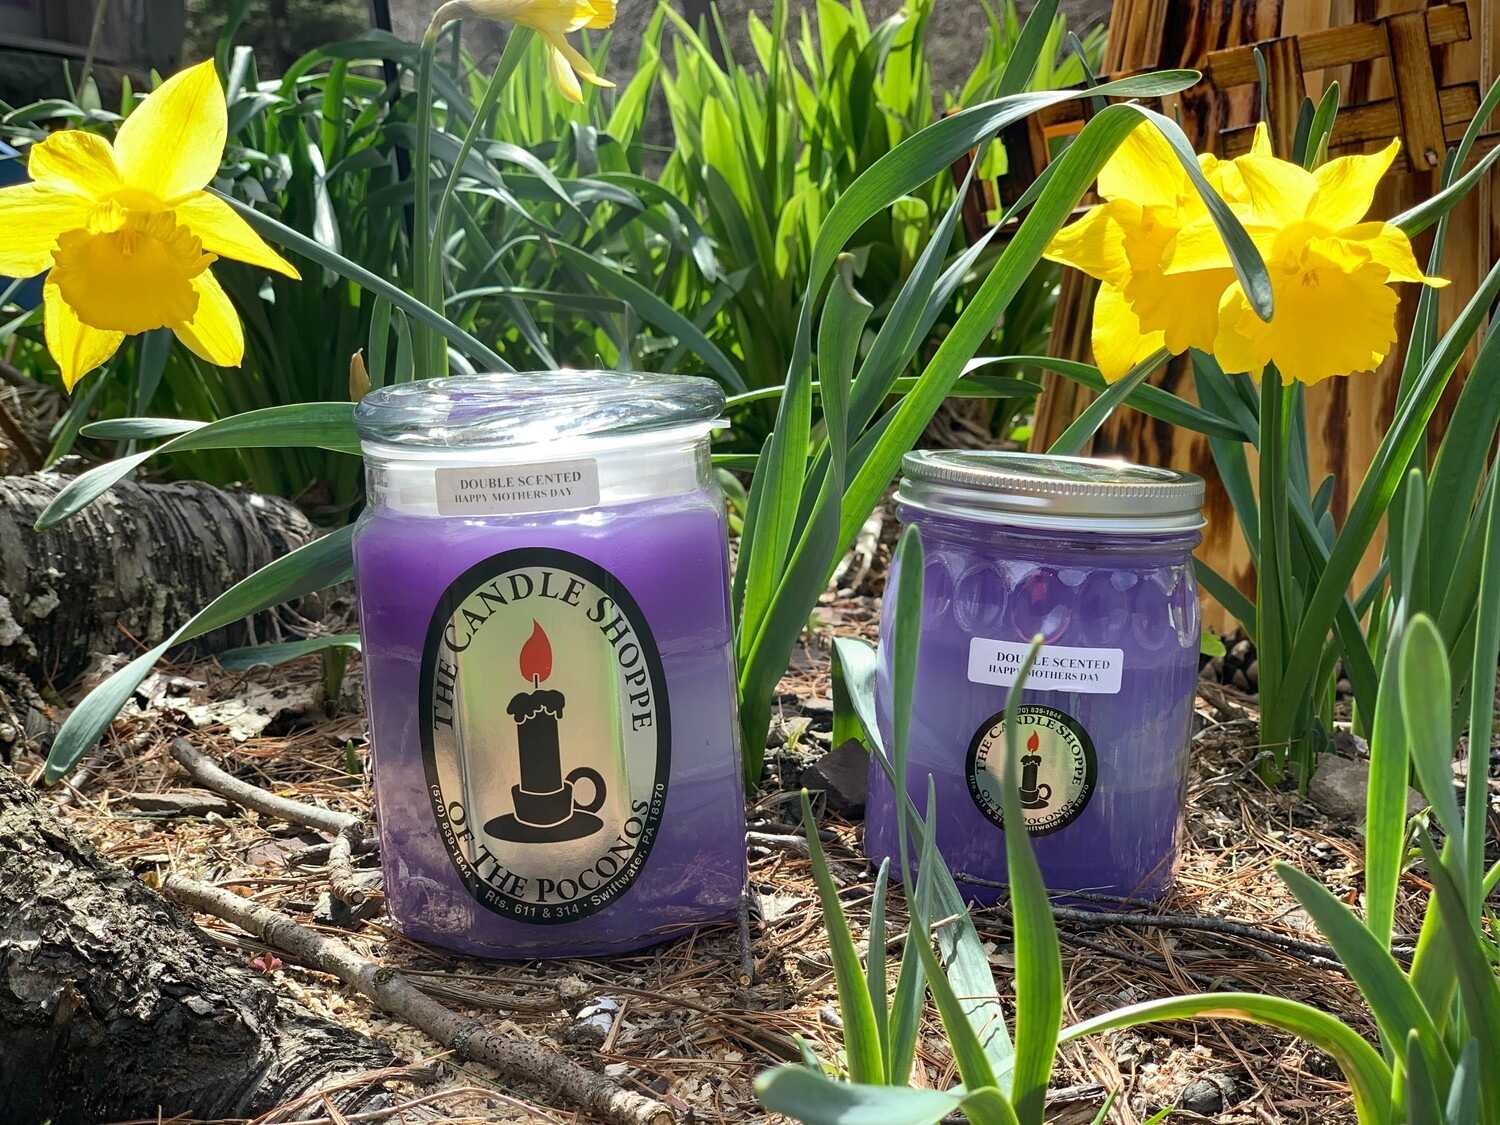 HAPPY MOTHER'S DAY CANDLES SET OF 2